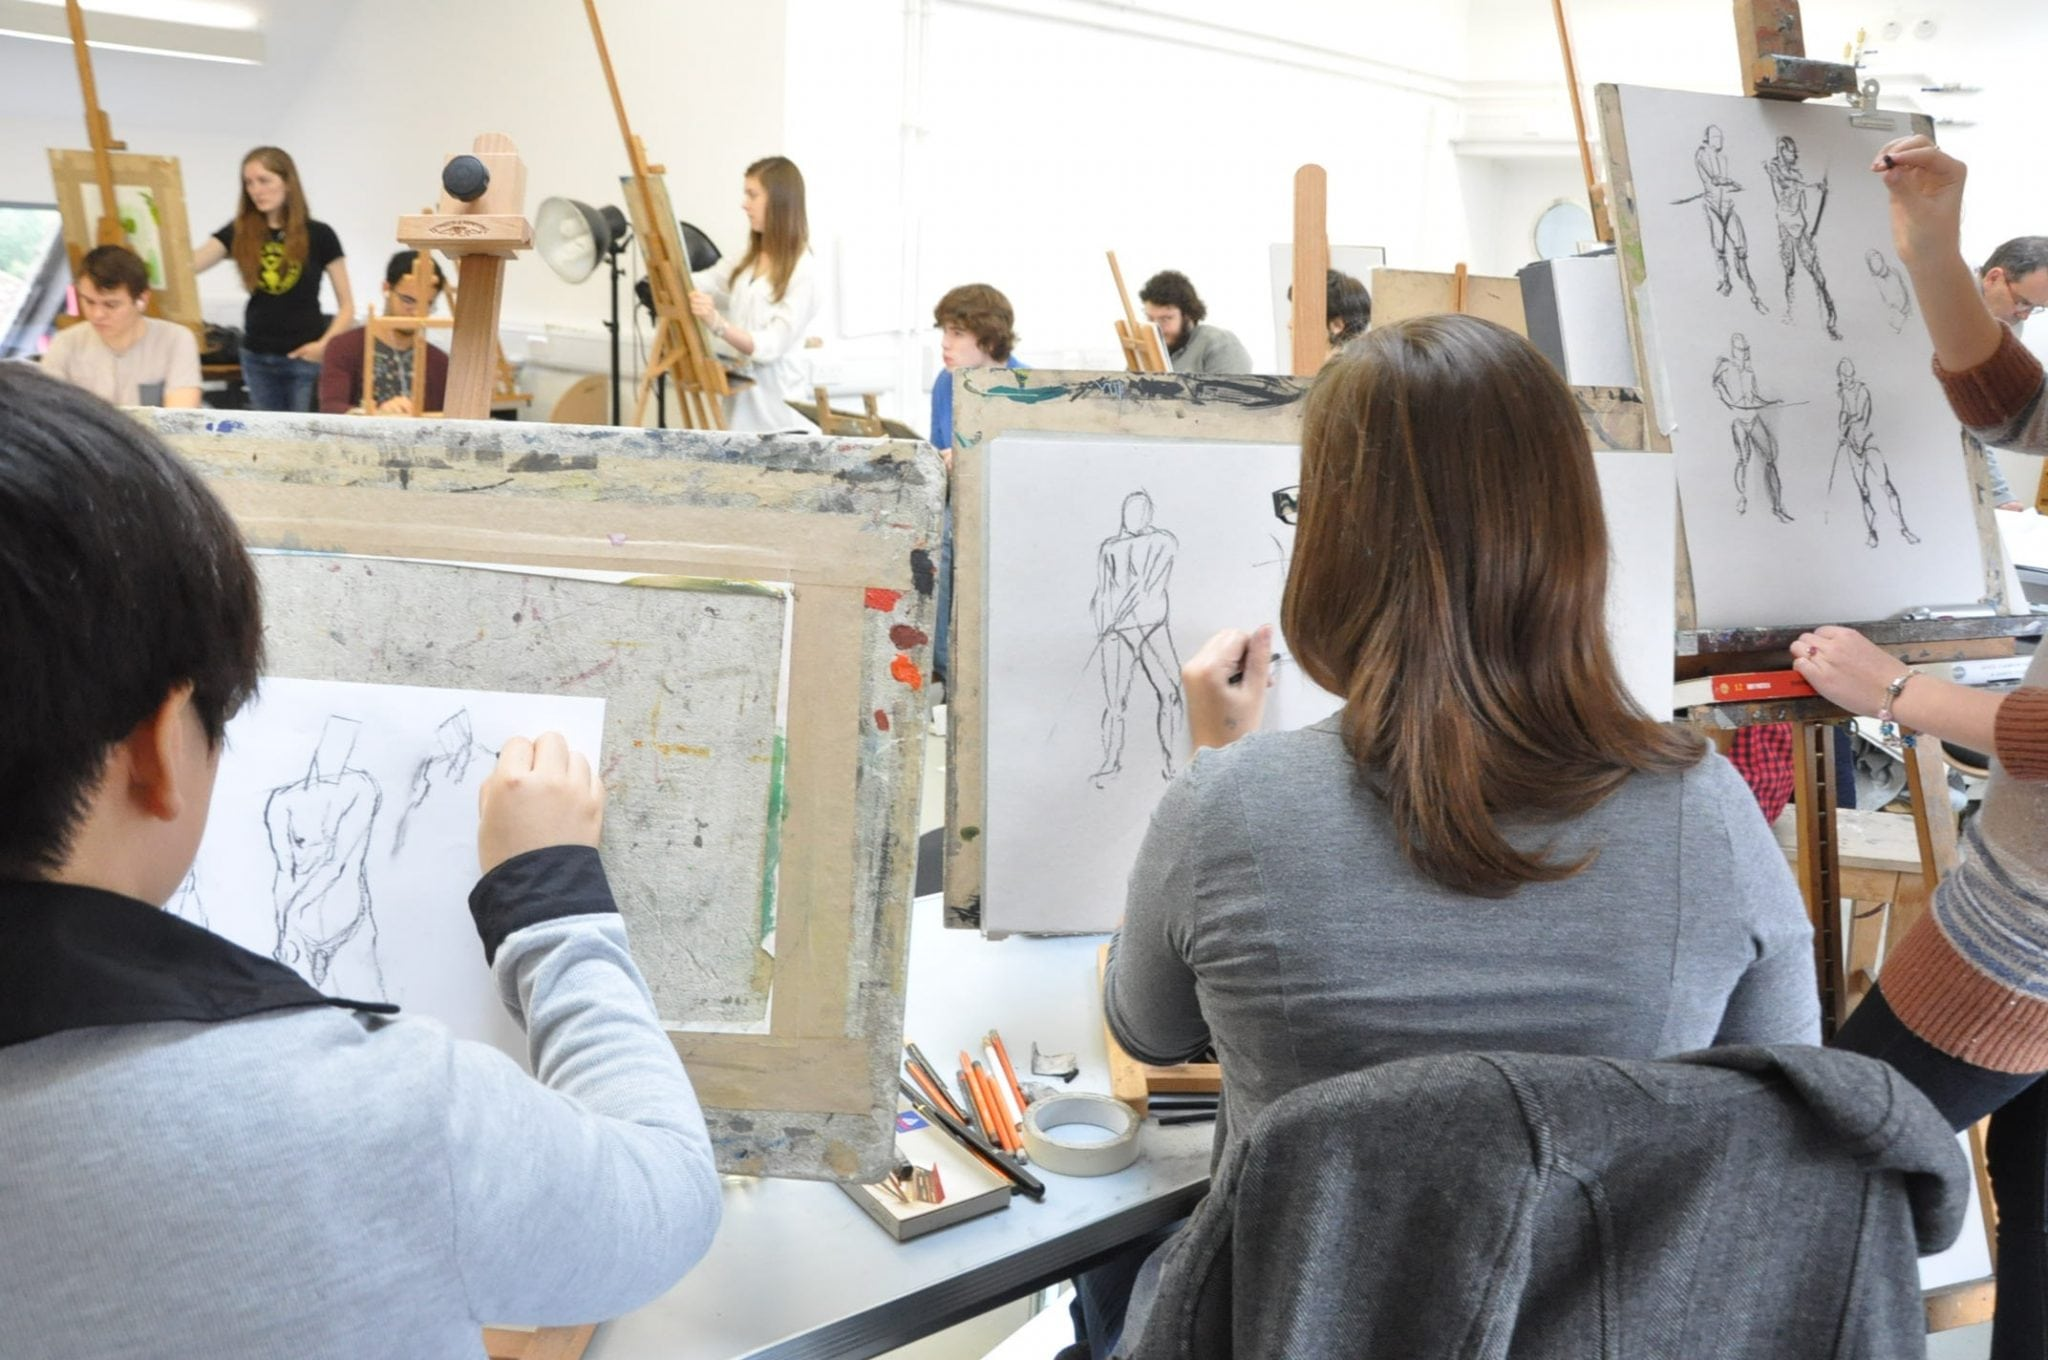 Level 5 BA (Hons) Animation Production students in Life Drawing class